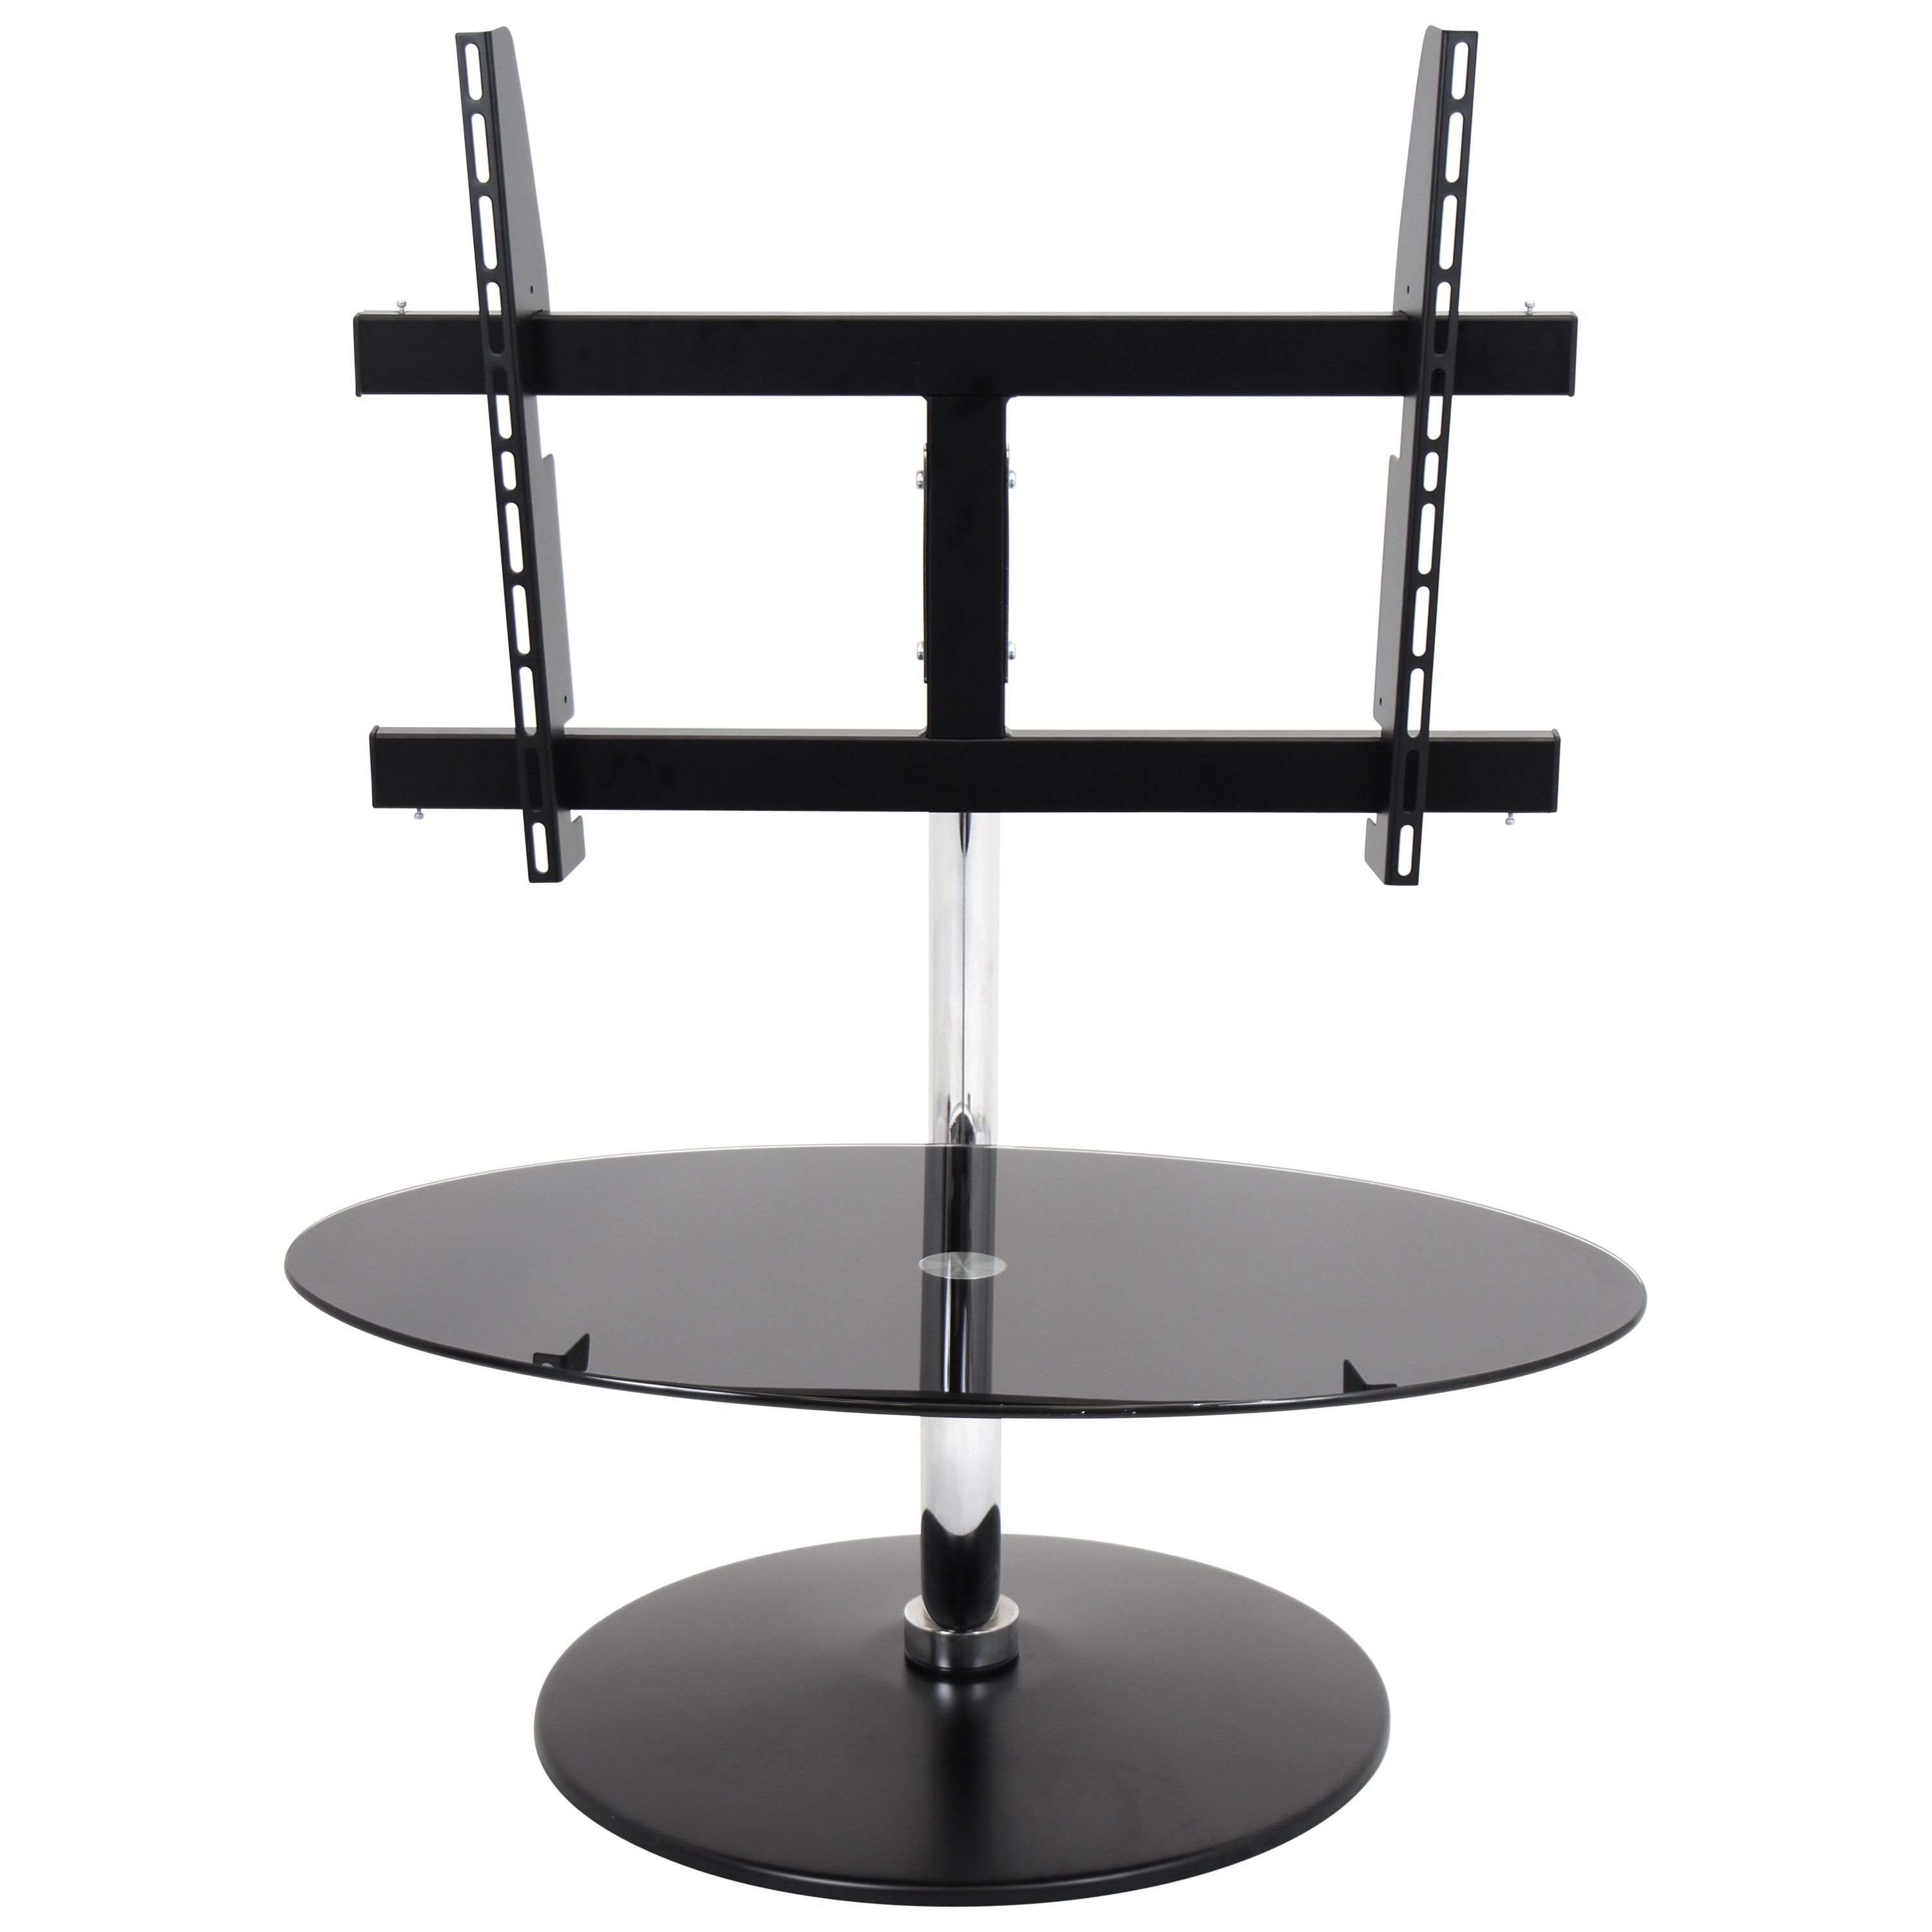 This C-shaped TV stand will add a contemporary flair to any room. This TV stand also swivels 360 degrees to position your TV any way you like.